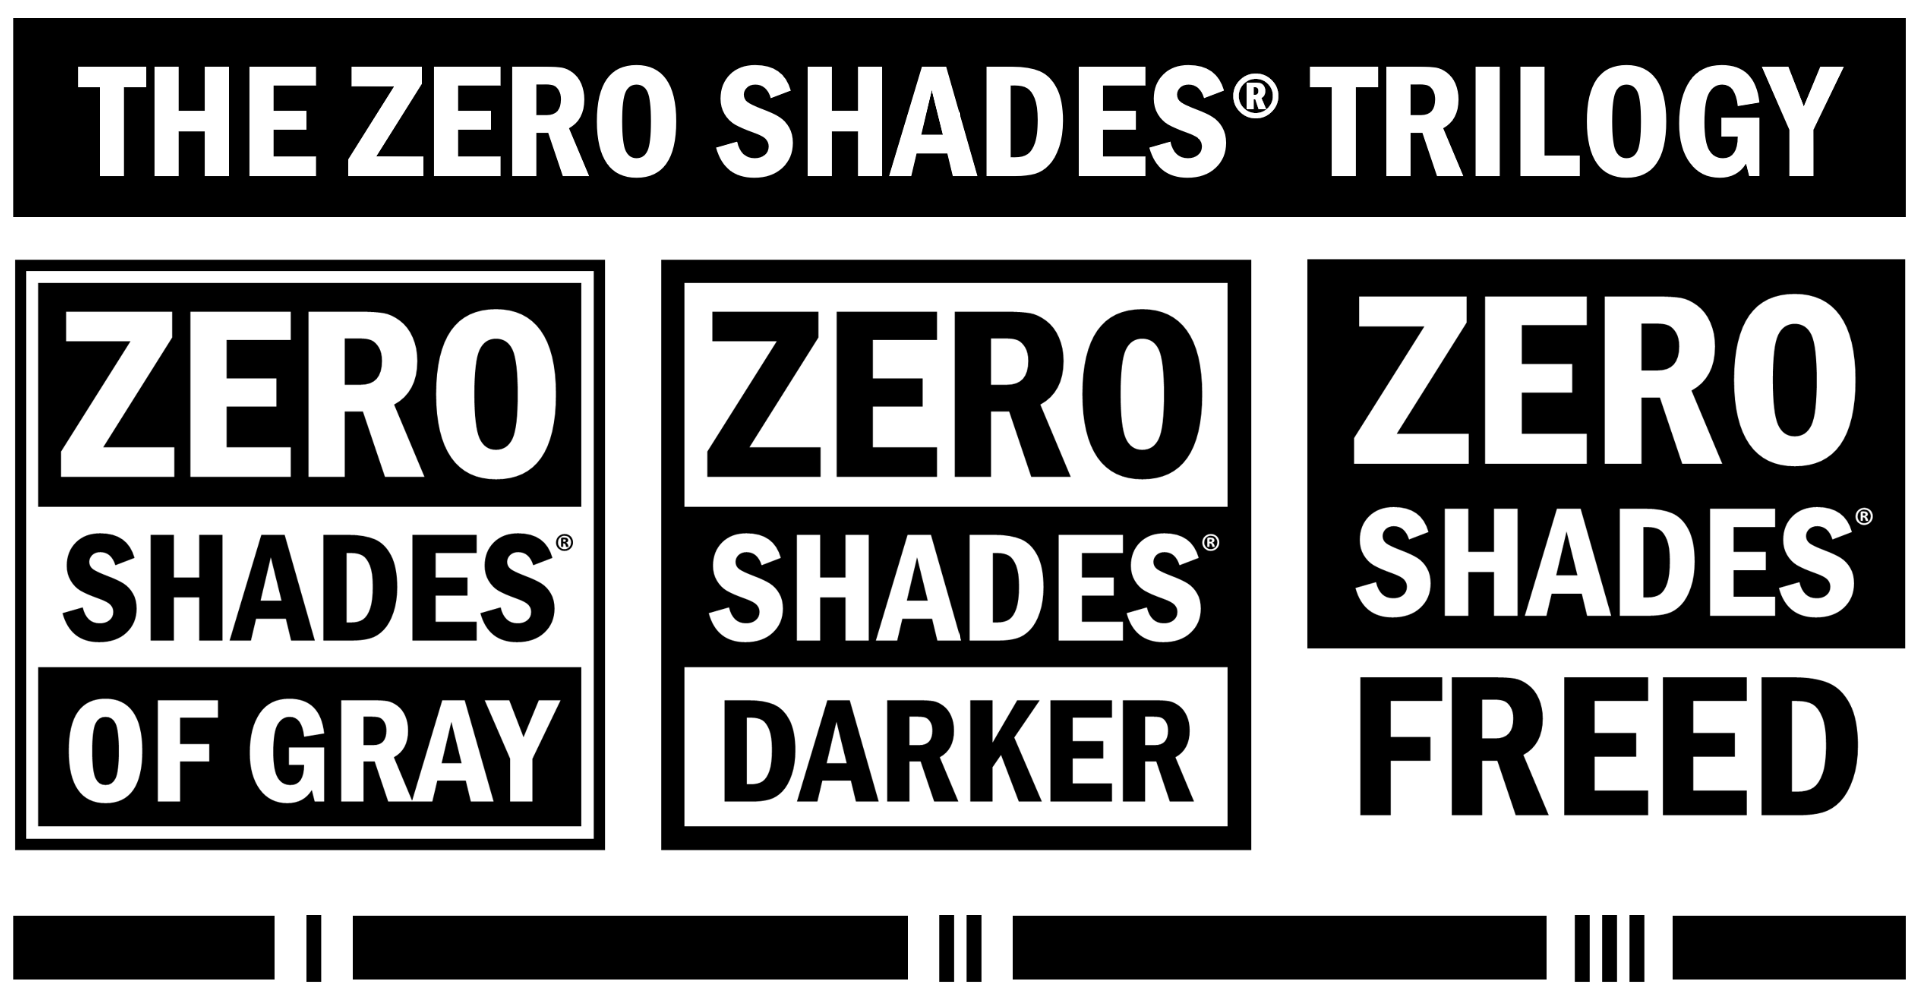 Shads Of Gray Zero Shades Collegiate Empowerment